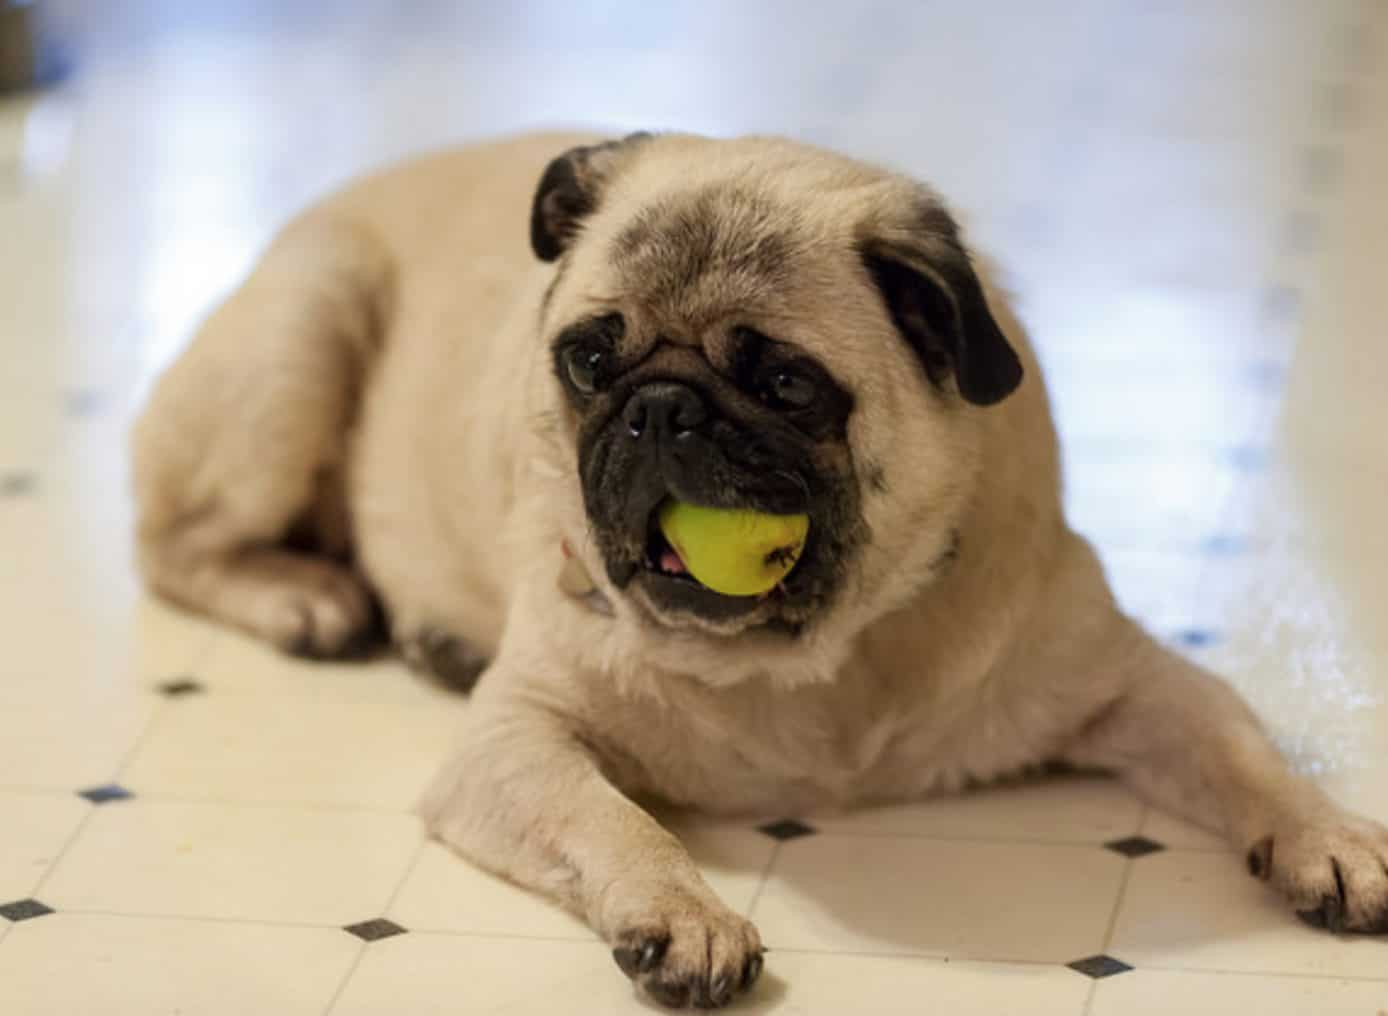 There are risks and side effects when dogs eat too many pears.